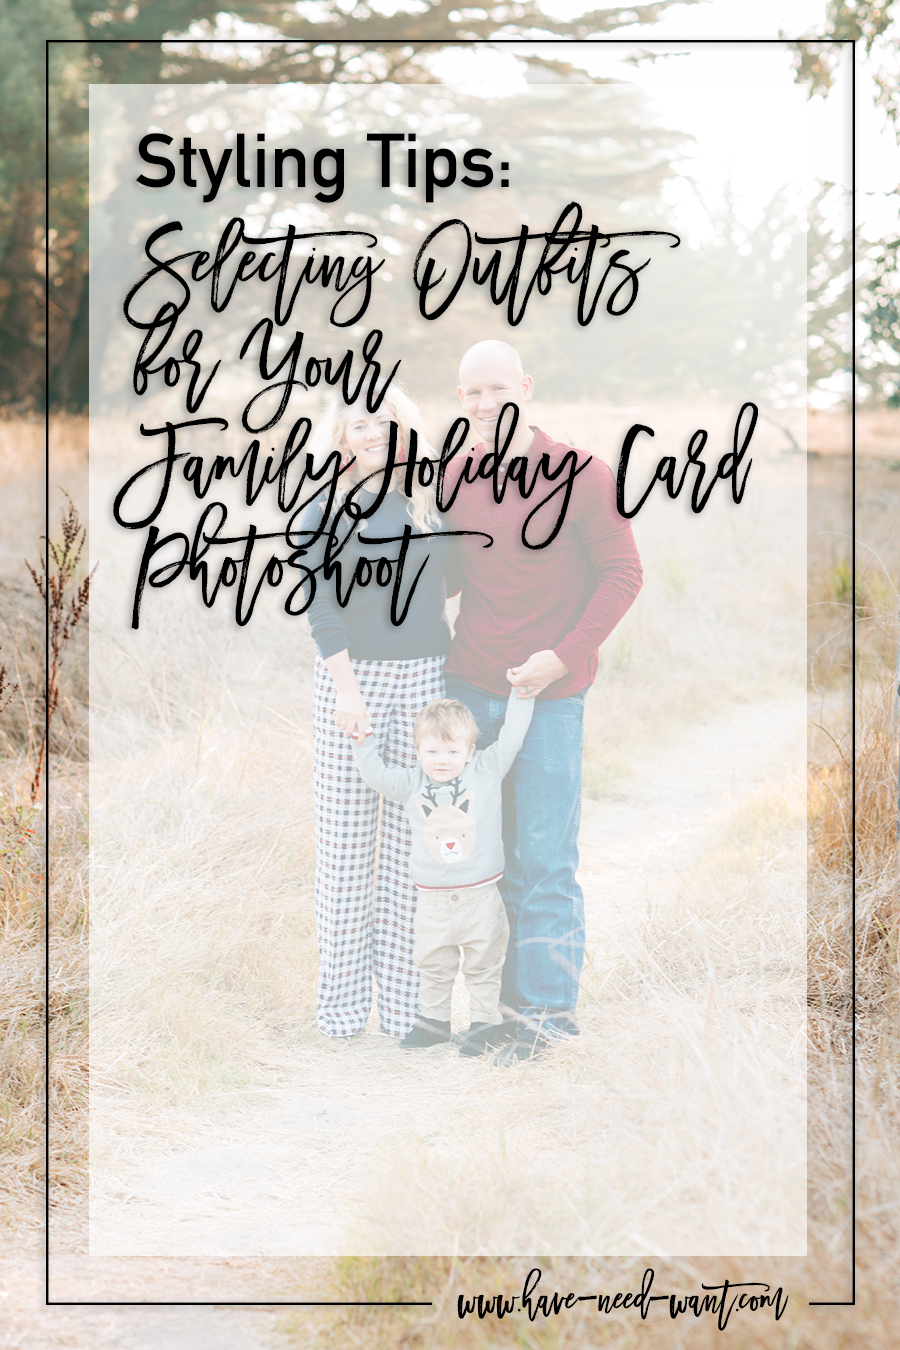 Family Holiday Card Outfits For Mom, Dad, and Son. Selecting coordinating outfits that will photograph well for your holiday cards - Have Need Want